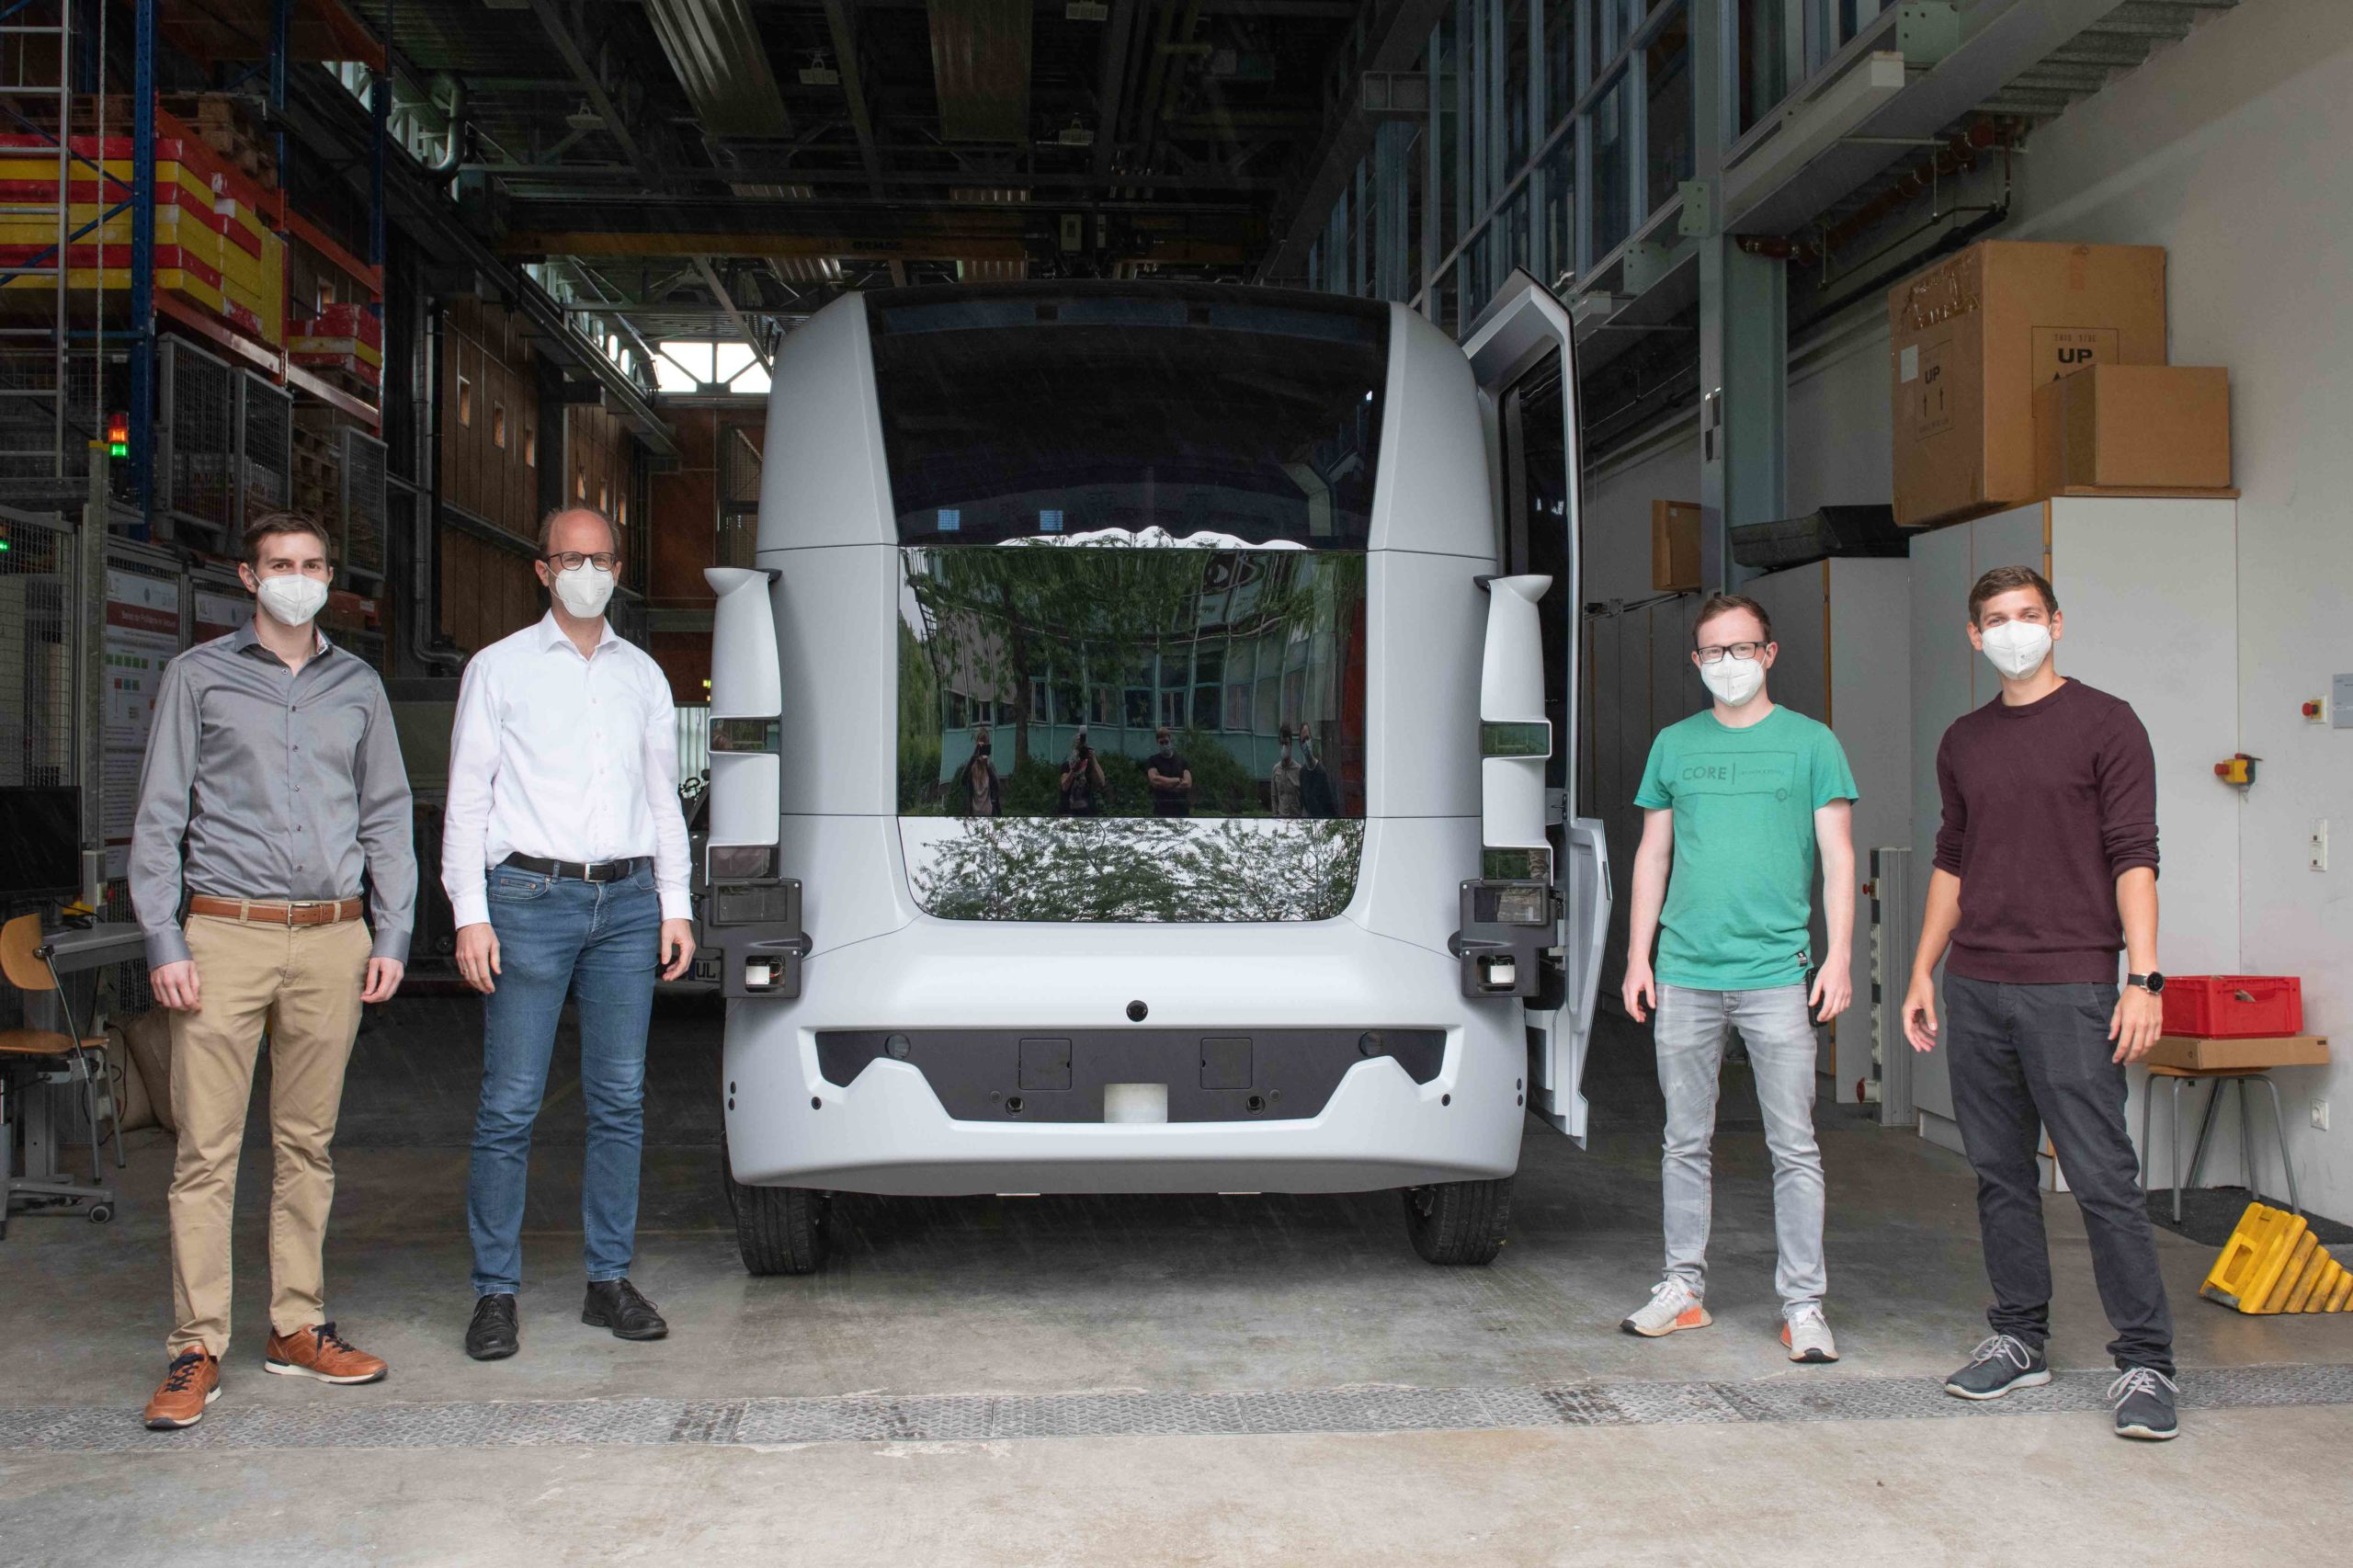 The UNICARagil team of the MRM in front of the autoCARGO prototype (from left to right): Markus Schön, Dr. Michael Buchholz, Markus Horn and Matti Henning [Photo: Elvira Eberhardt]